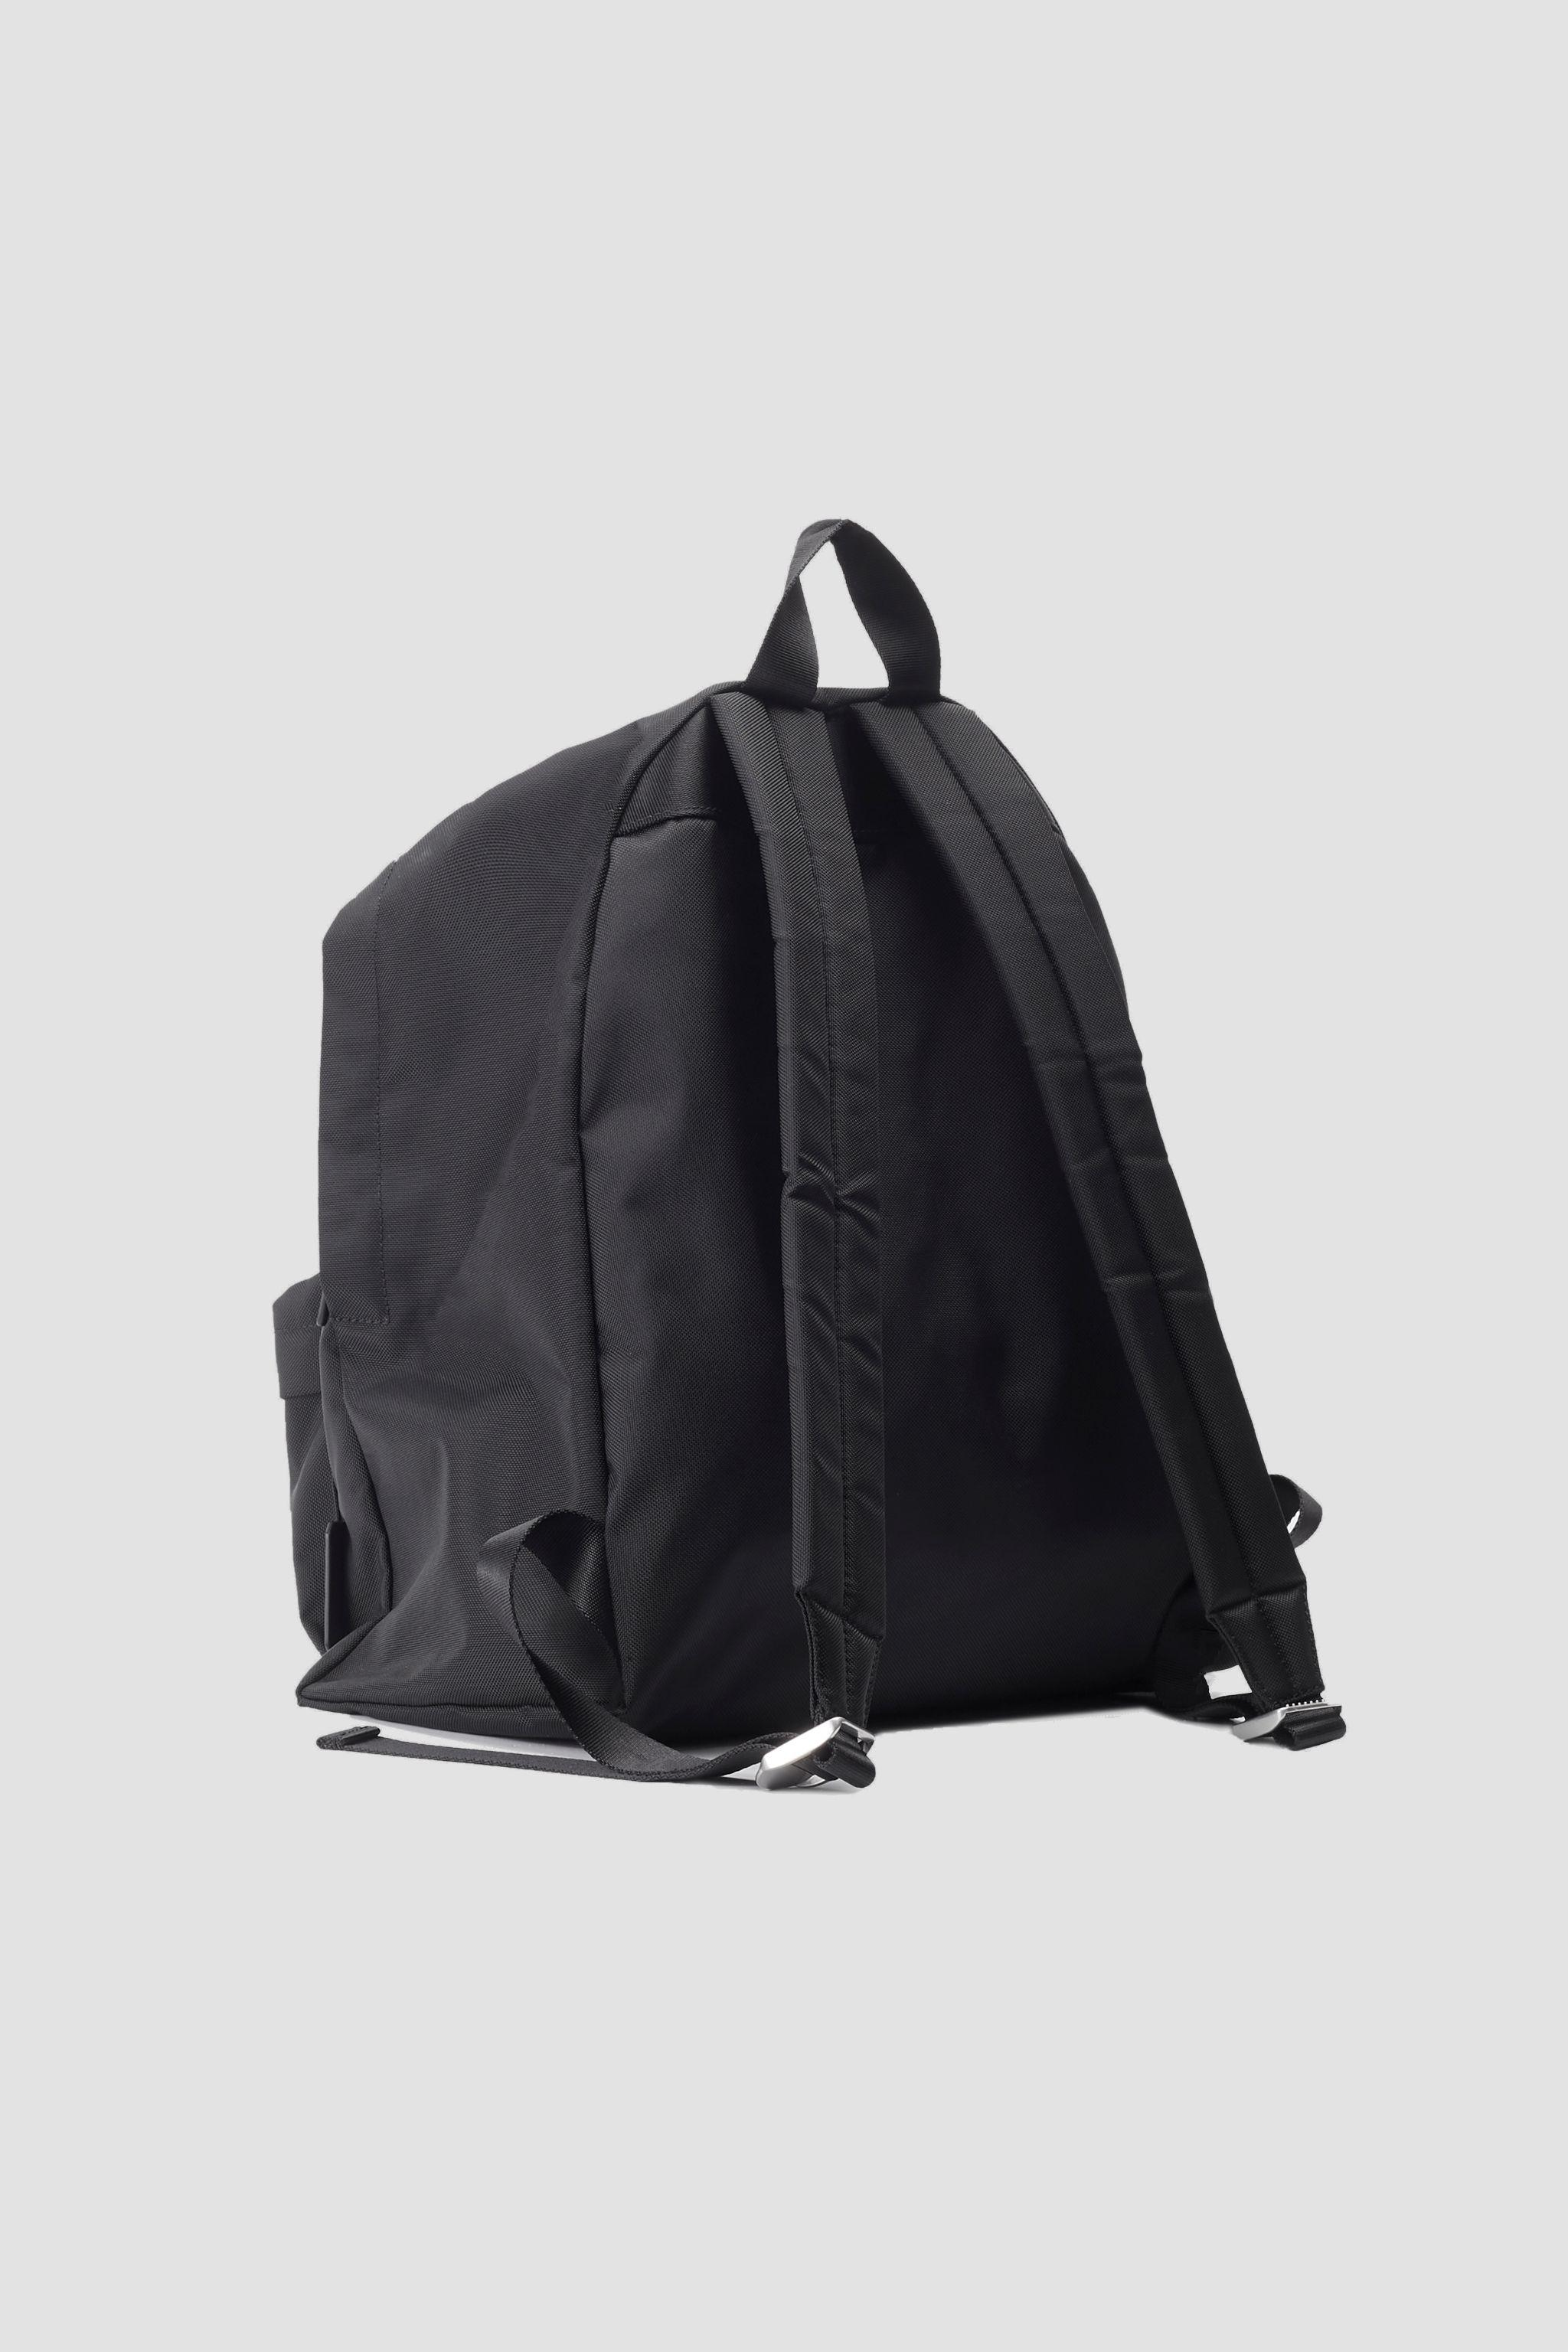 The Deconstructed Backpack 2